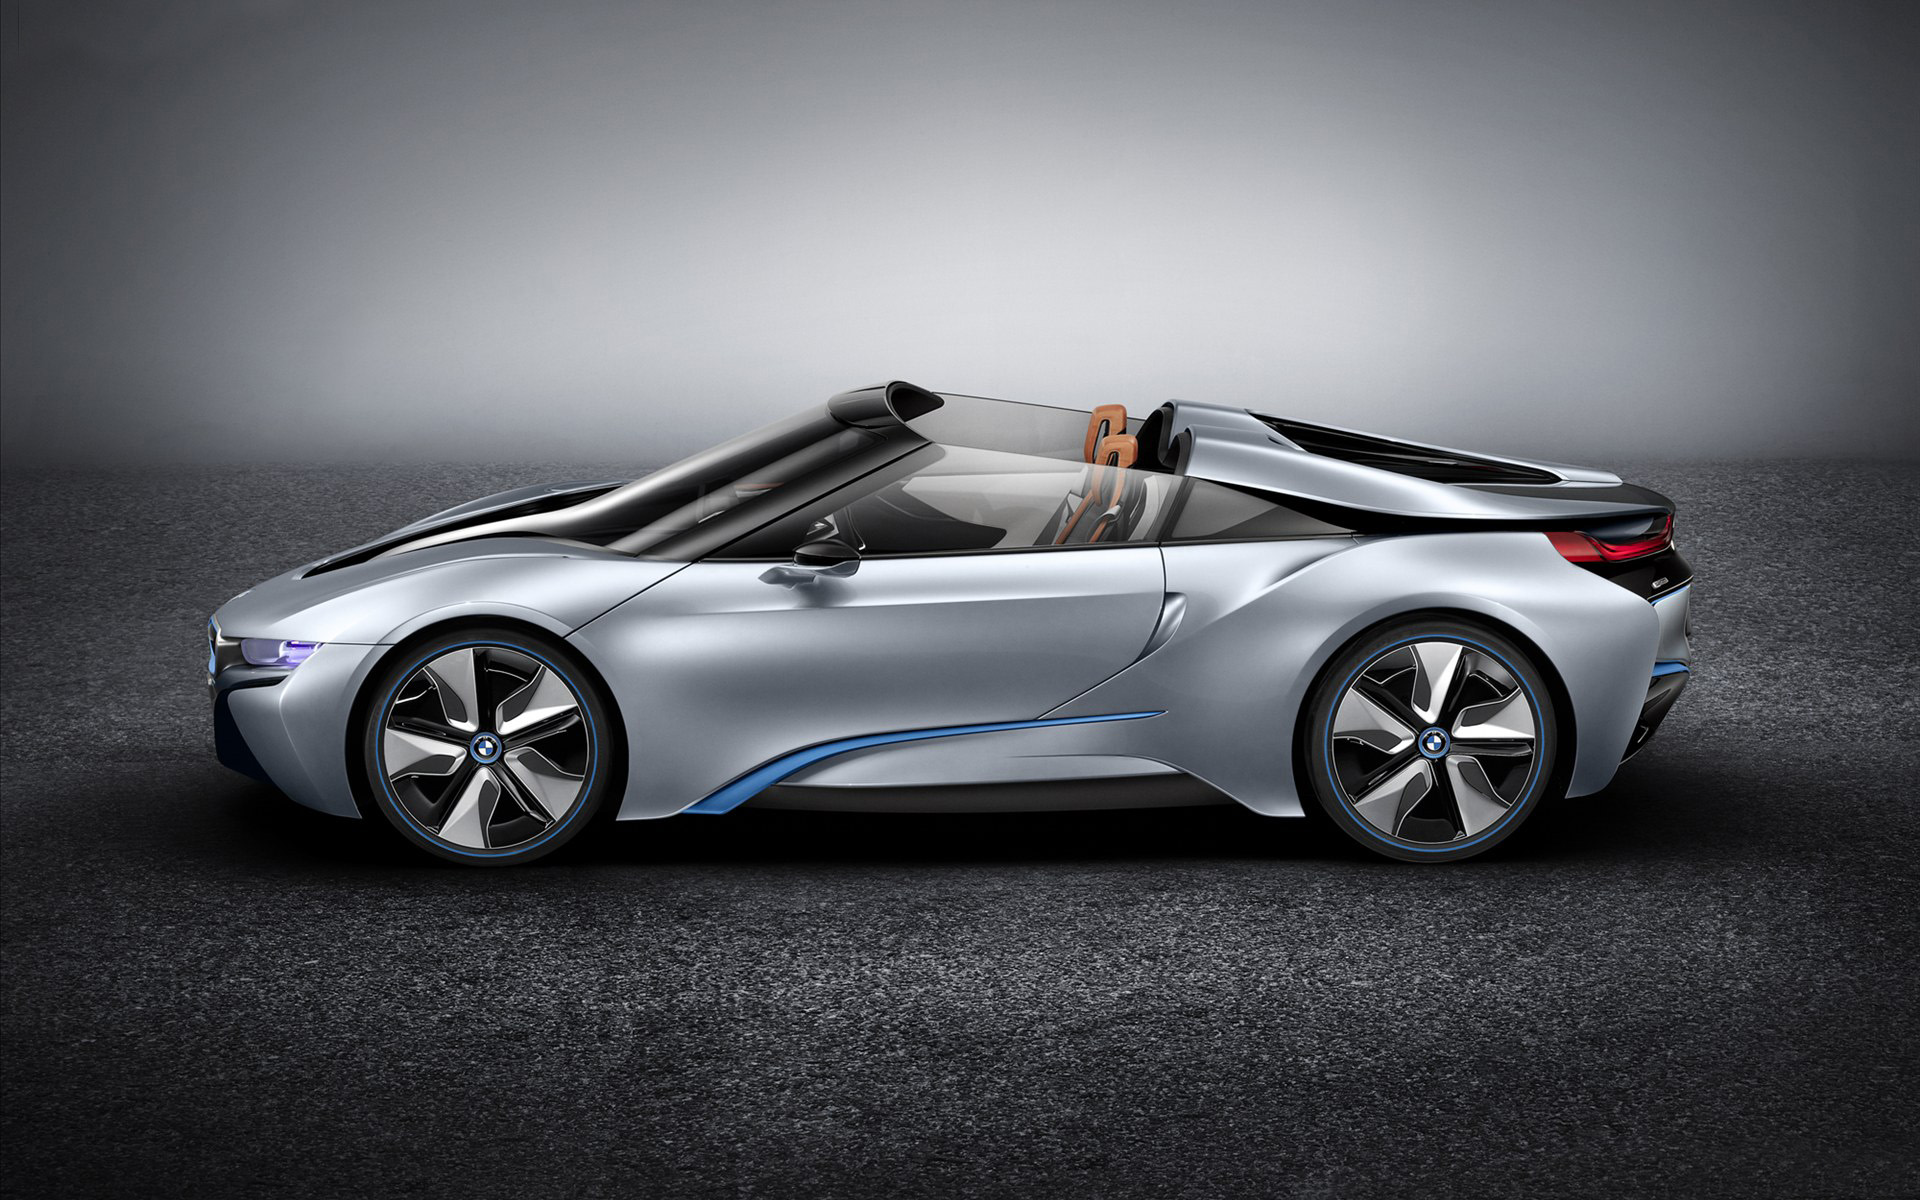 BMW i8 Spyder Concept 2012 5 Wallpaper | HD Car Wallpapers| ID #2575